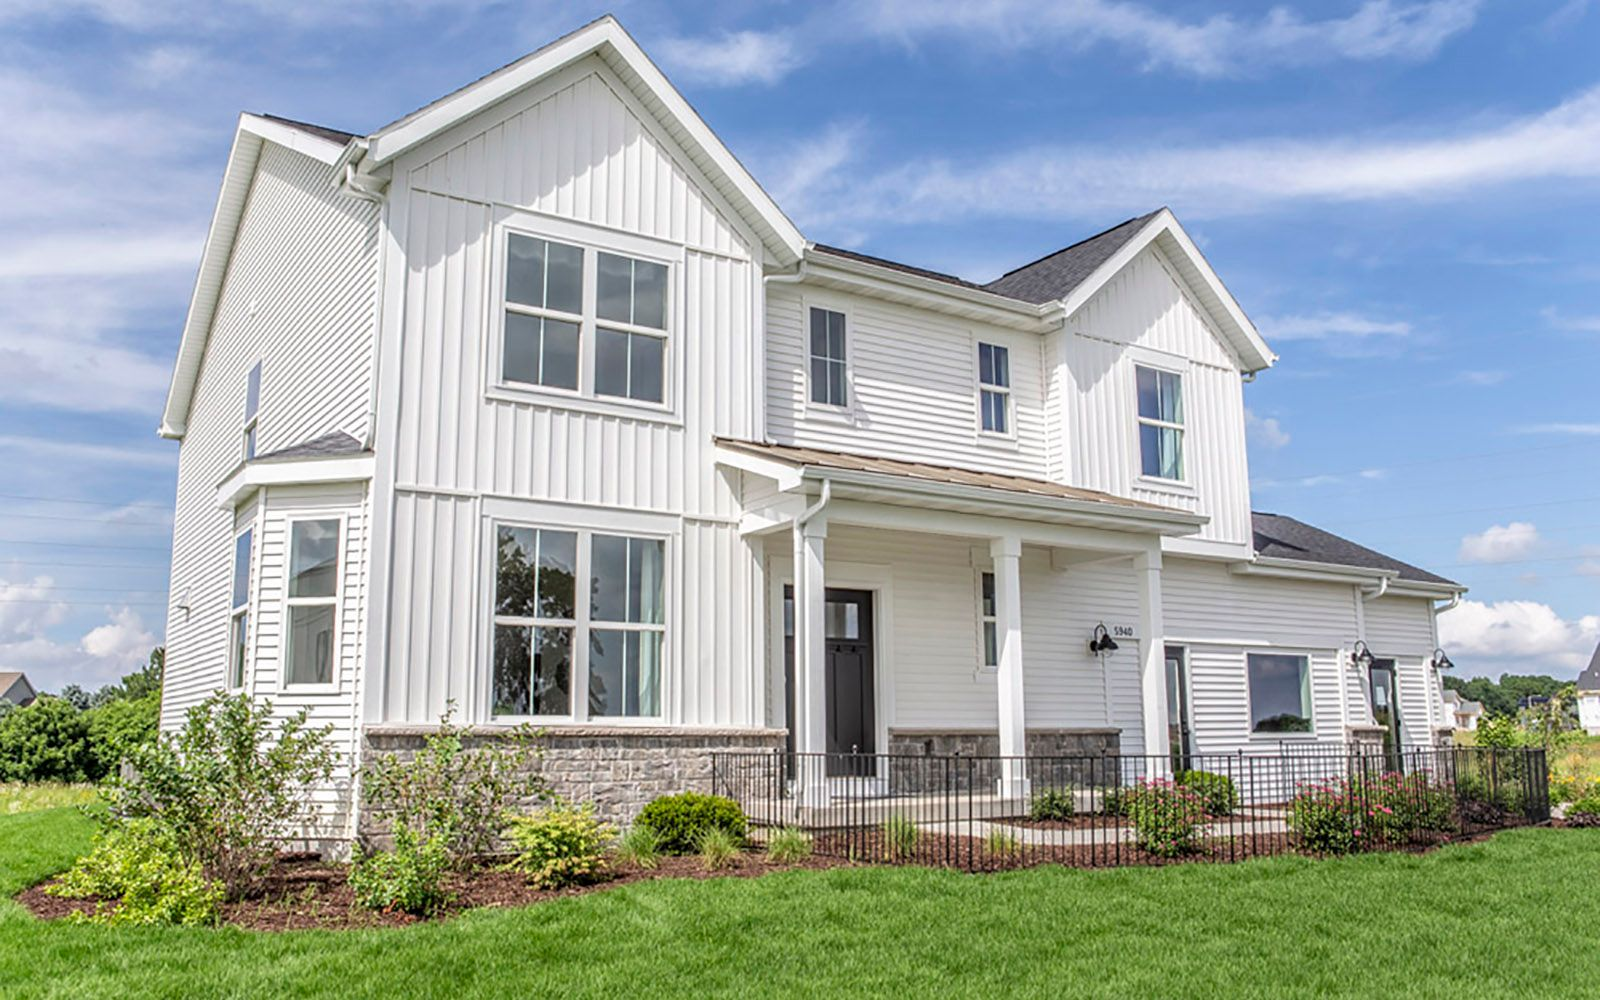 sheridan II farmhouse exterior Stoner Prairie new homes for sale in Fitchburg WI William Ryan Hom...:Stoner Prairie Model Home - Sheridan II - Farmhouse Exterior